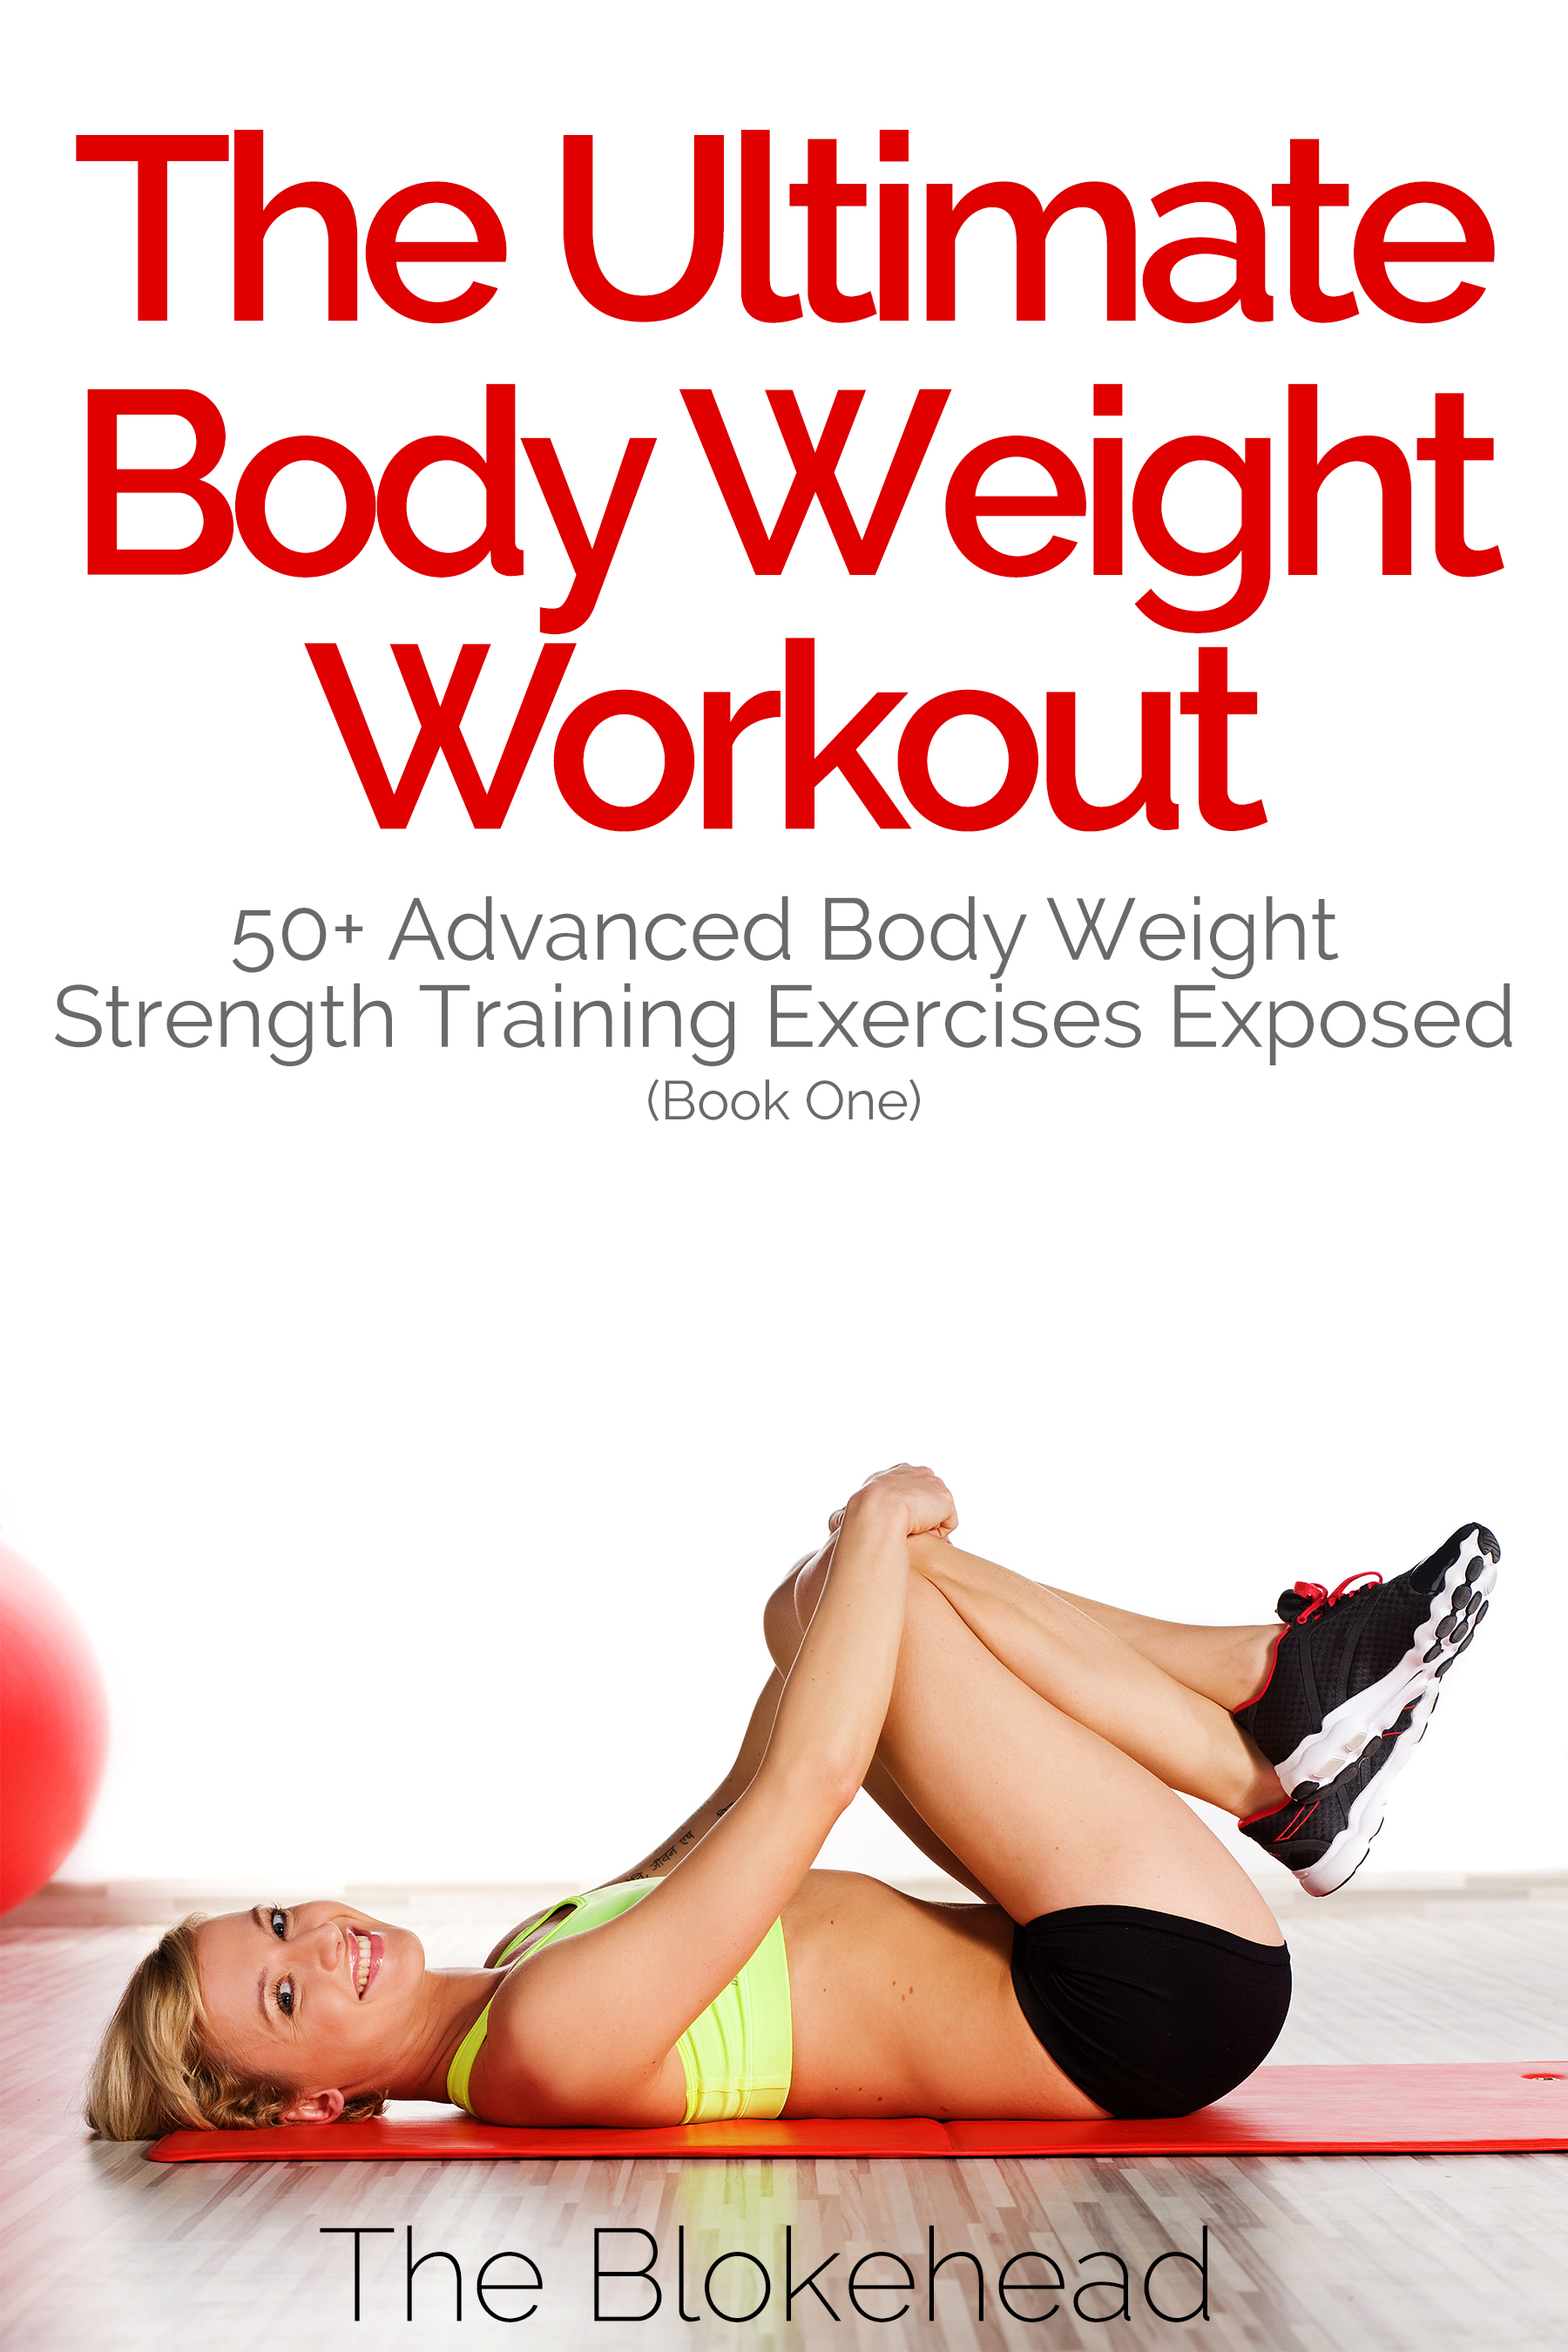 The ultimate bodyweight workout: 50+ advanced bodyweight strength training exercises